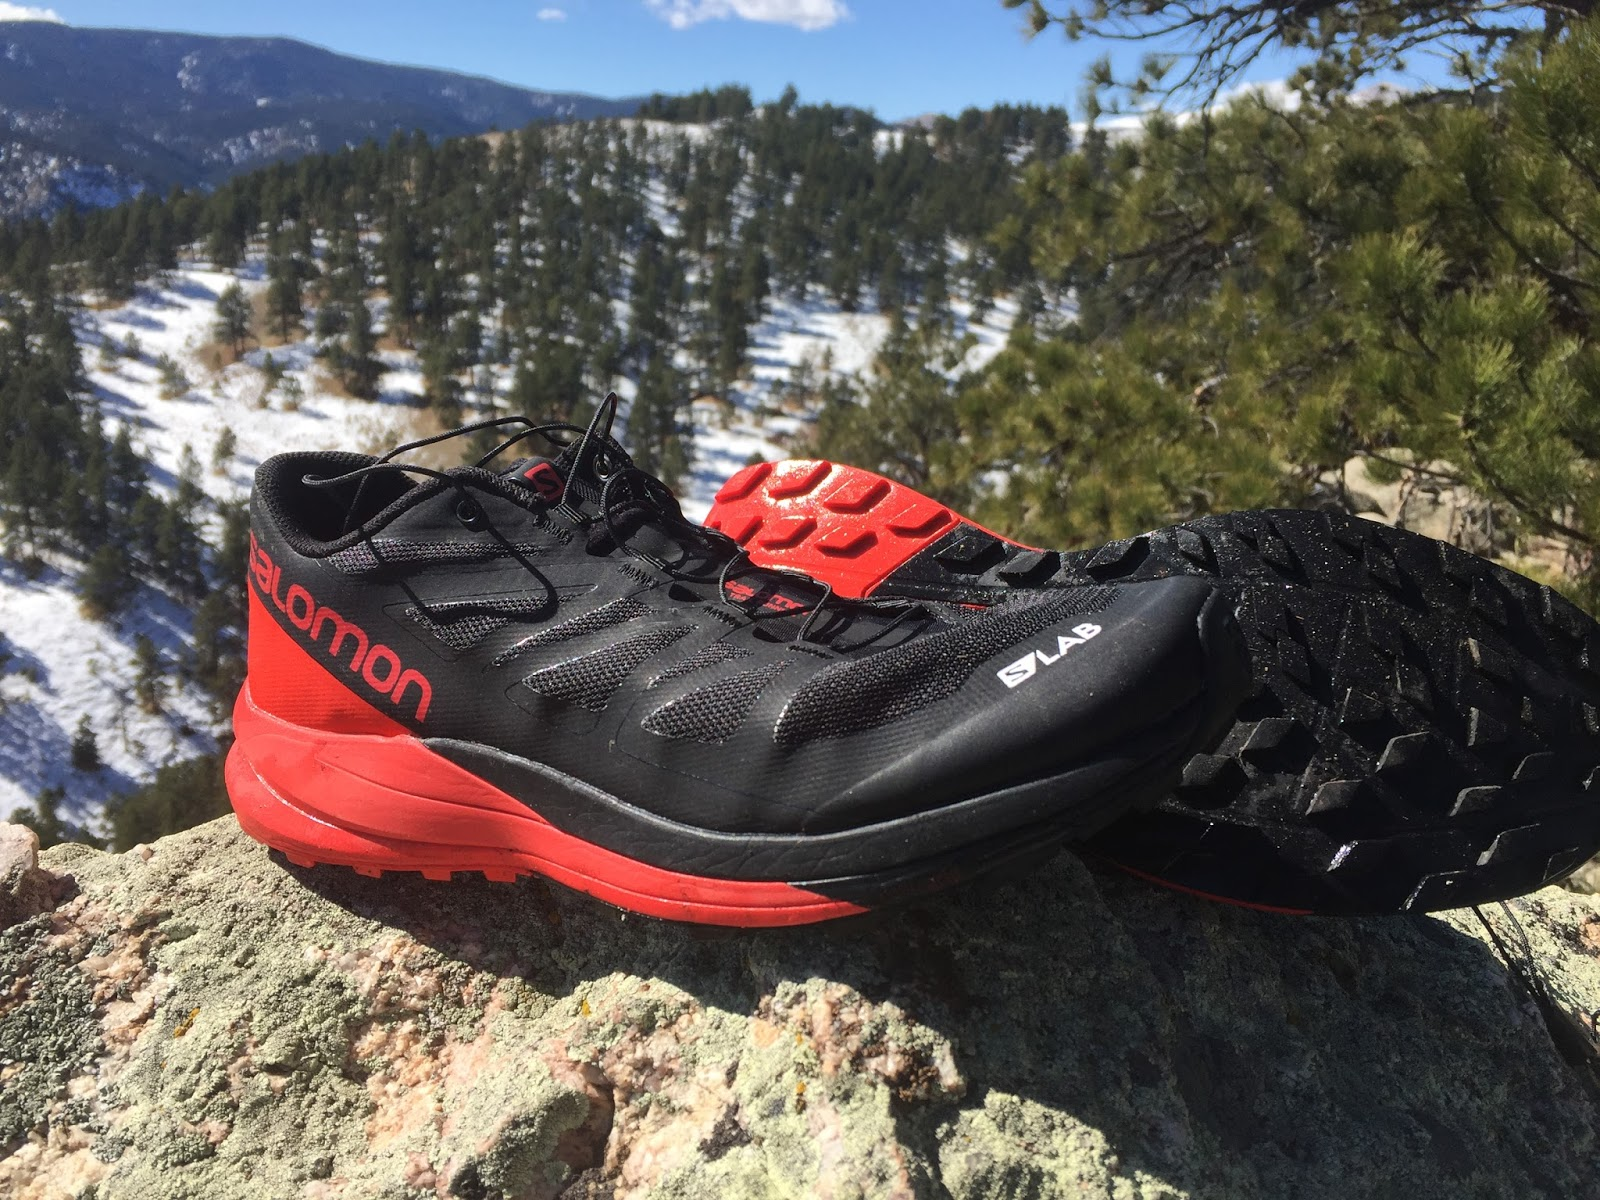 ff90774ff59a Salomon S-Lab Sense Ultra Review - S-Lab Race Performance Now Comes With  Ample Cushion